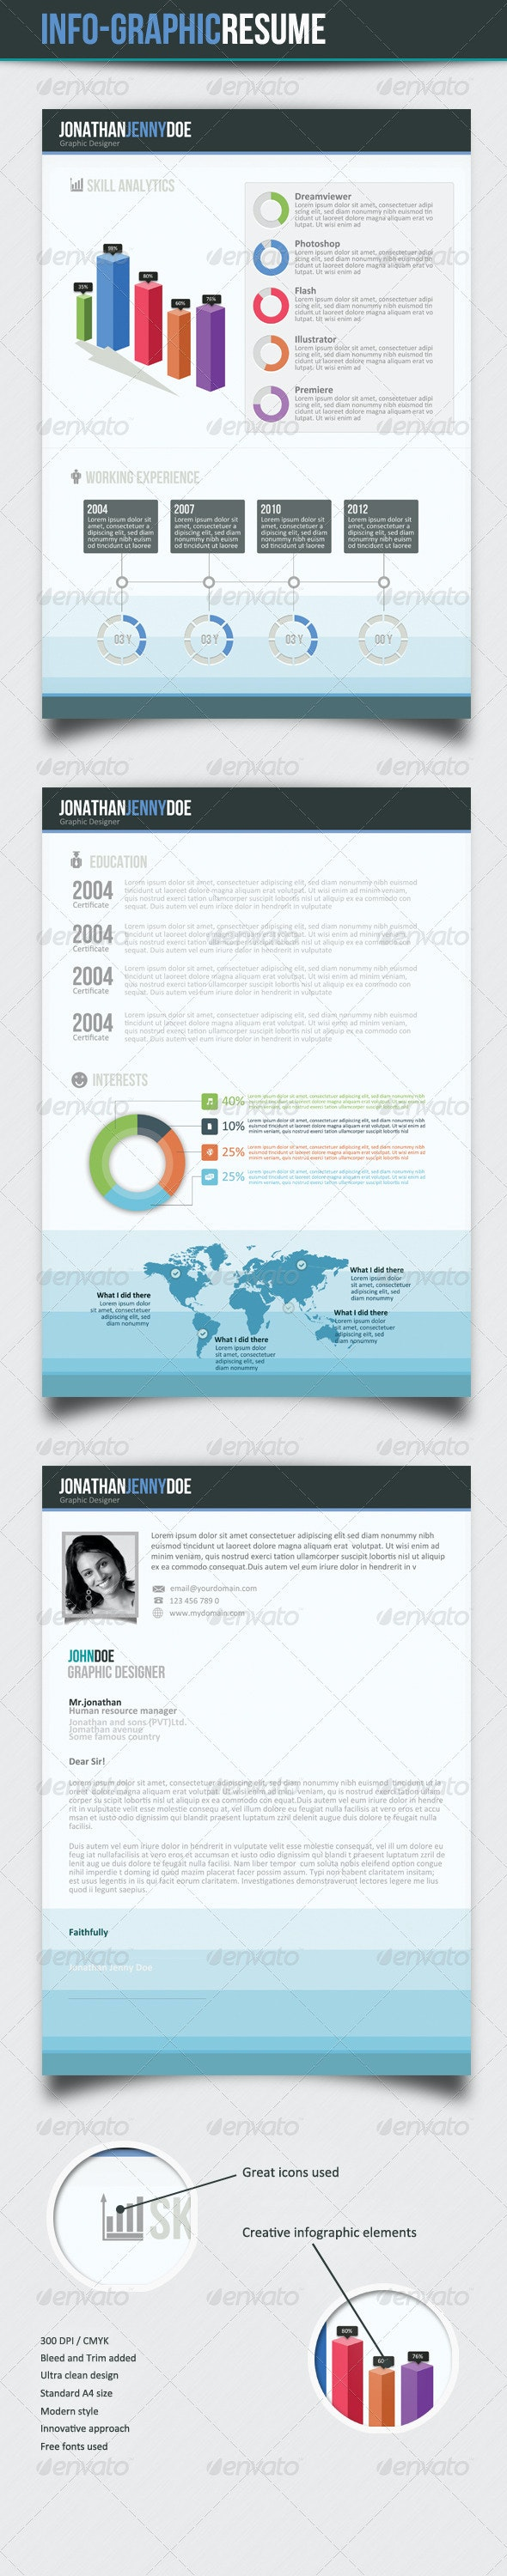 Infographic 3Page Resume - Resumes Stationery